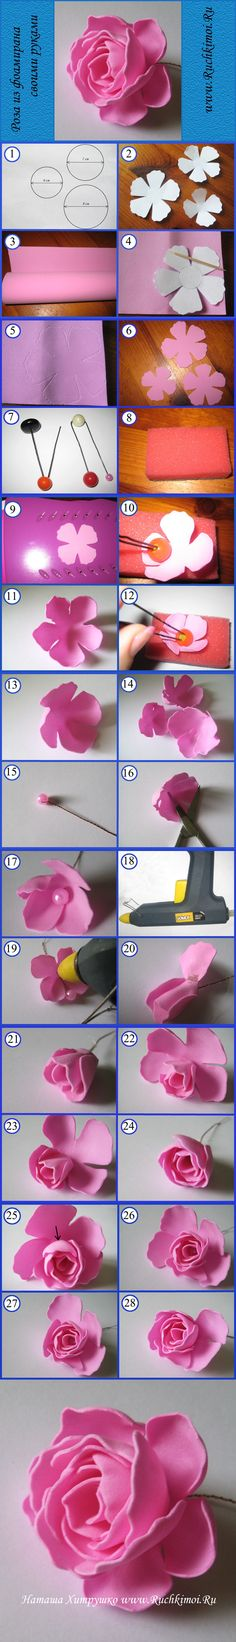 36 ideas flowers diy foam for 2019 Paper Flowers Diy, Handmade Flowers, Felt Flowers, Flower Crafts, Fabric Flowers, Flower Diy, Fondant Flowers, Foam Crafts, Diy And Crafts